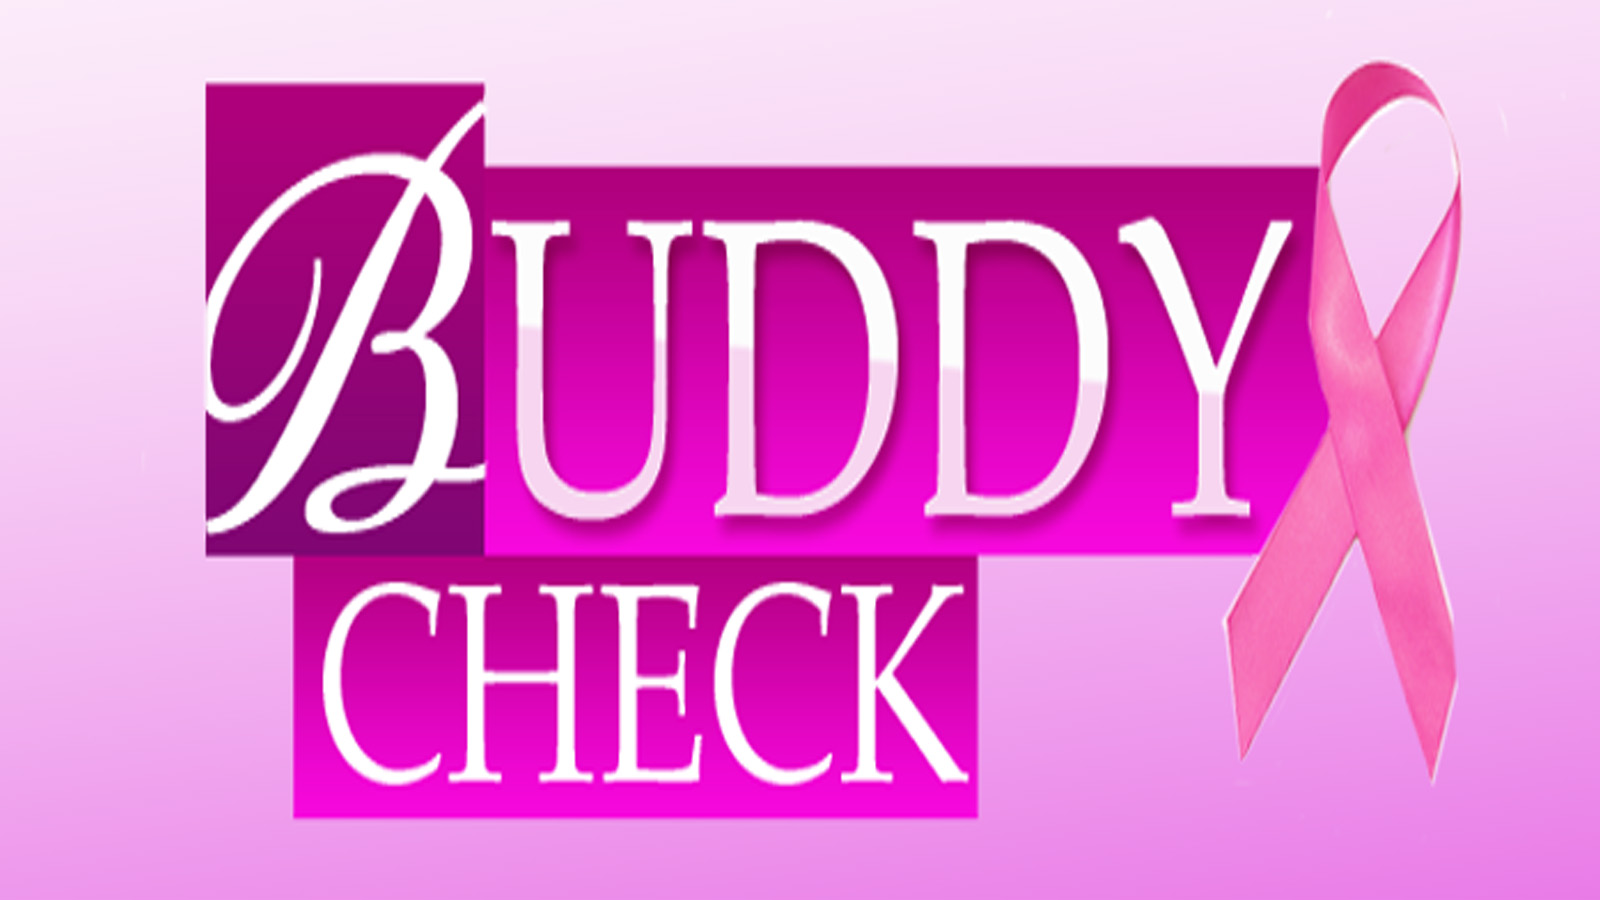 Buddy Check 16x9_1546983974764.jpg.jpg